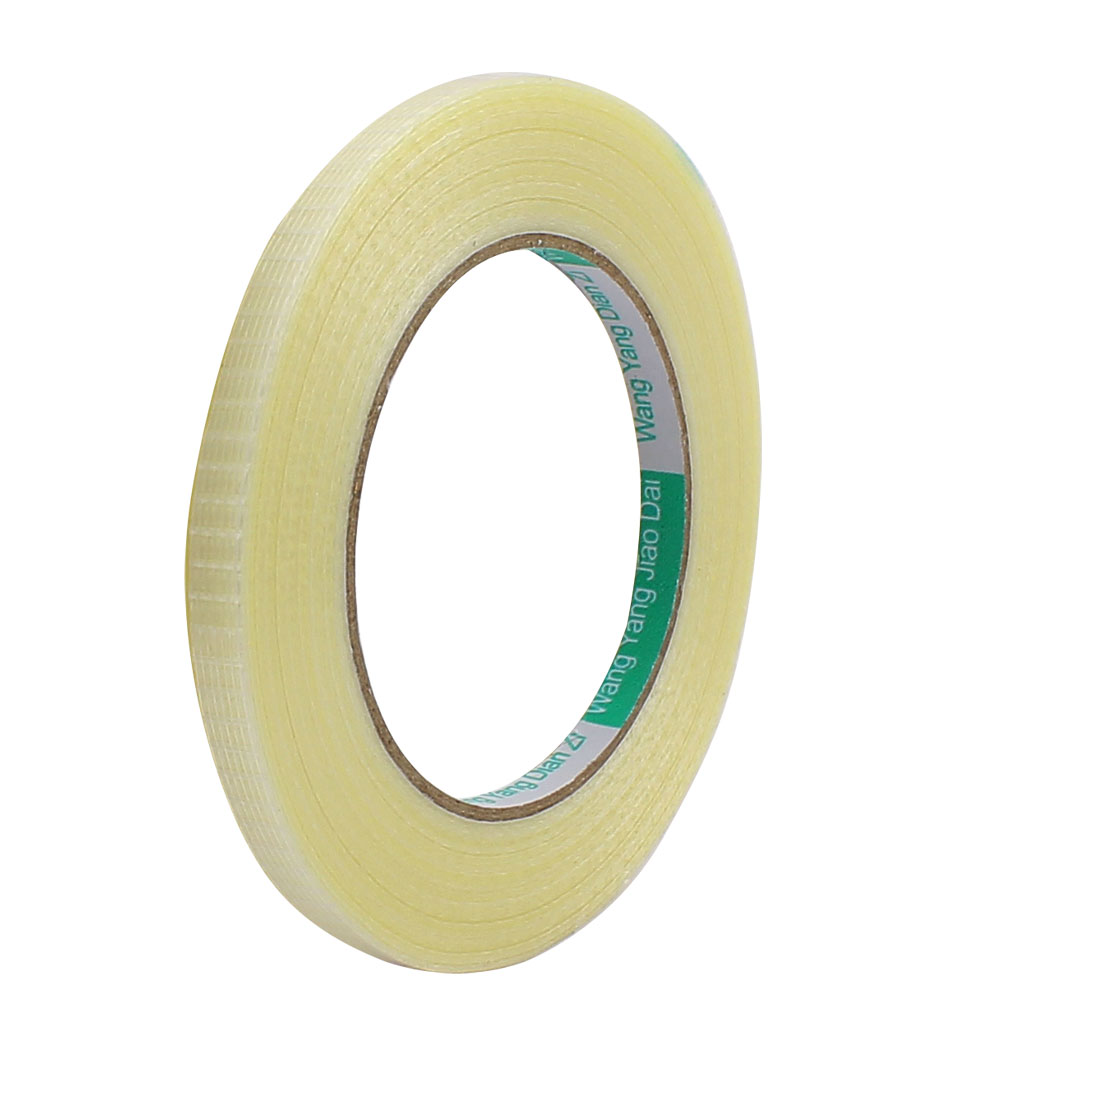 8mm Height 50M Length Long Adhesive Insulating Grid Glass Fiber Tape Roll